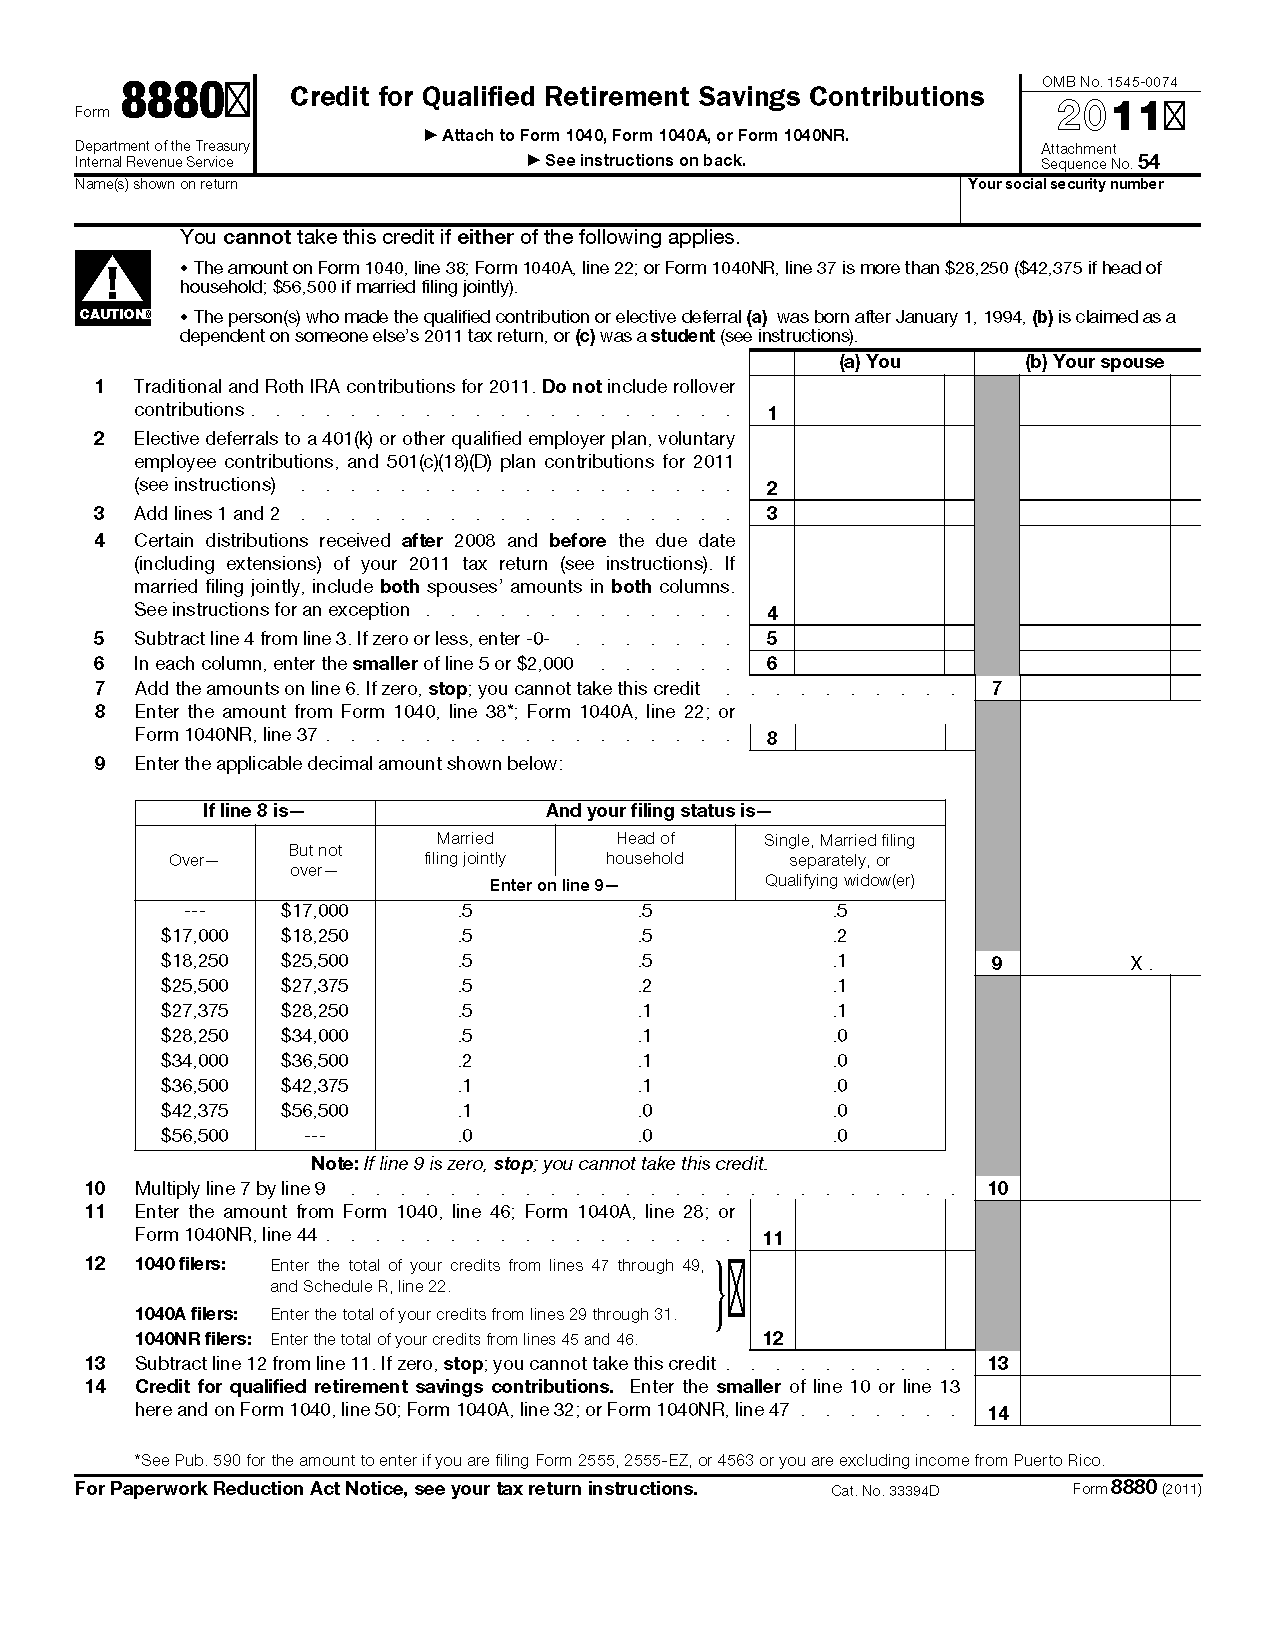 Form 8880 Credit for Qualified Retirement Savings Contributions